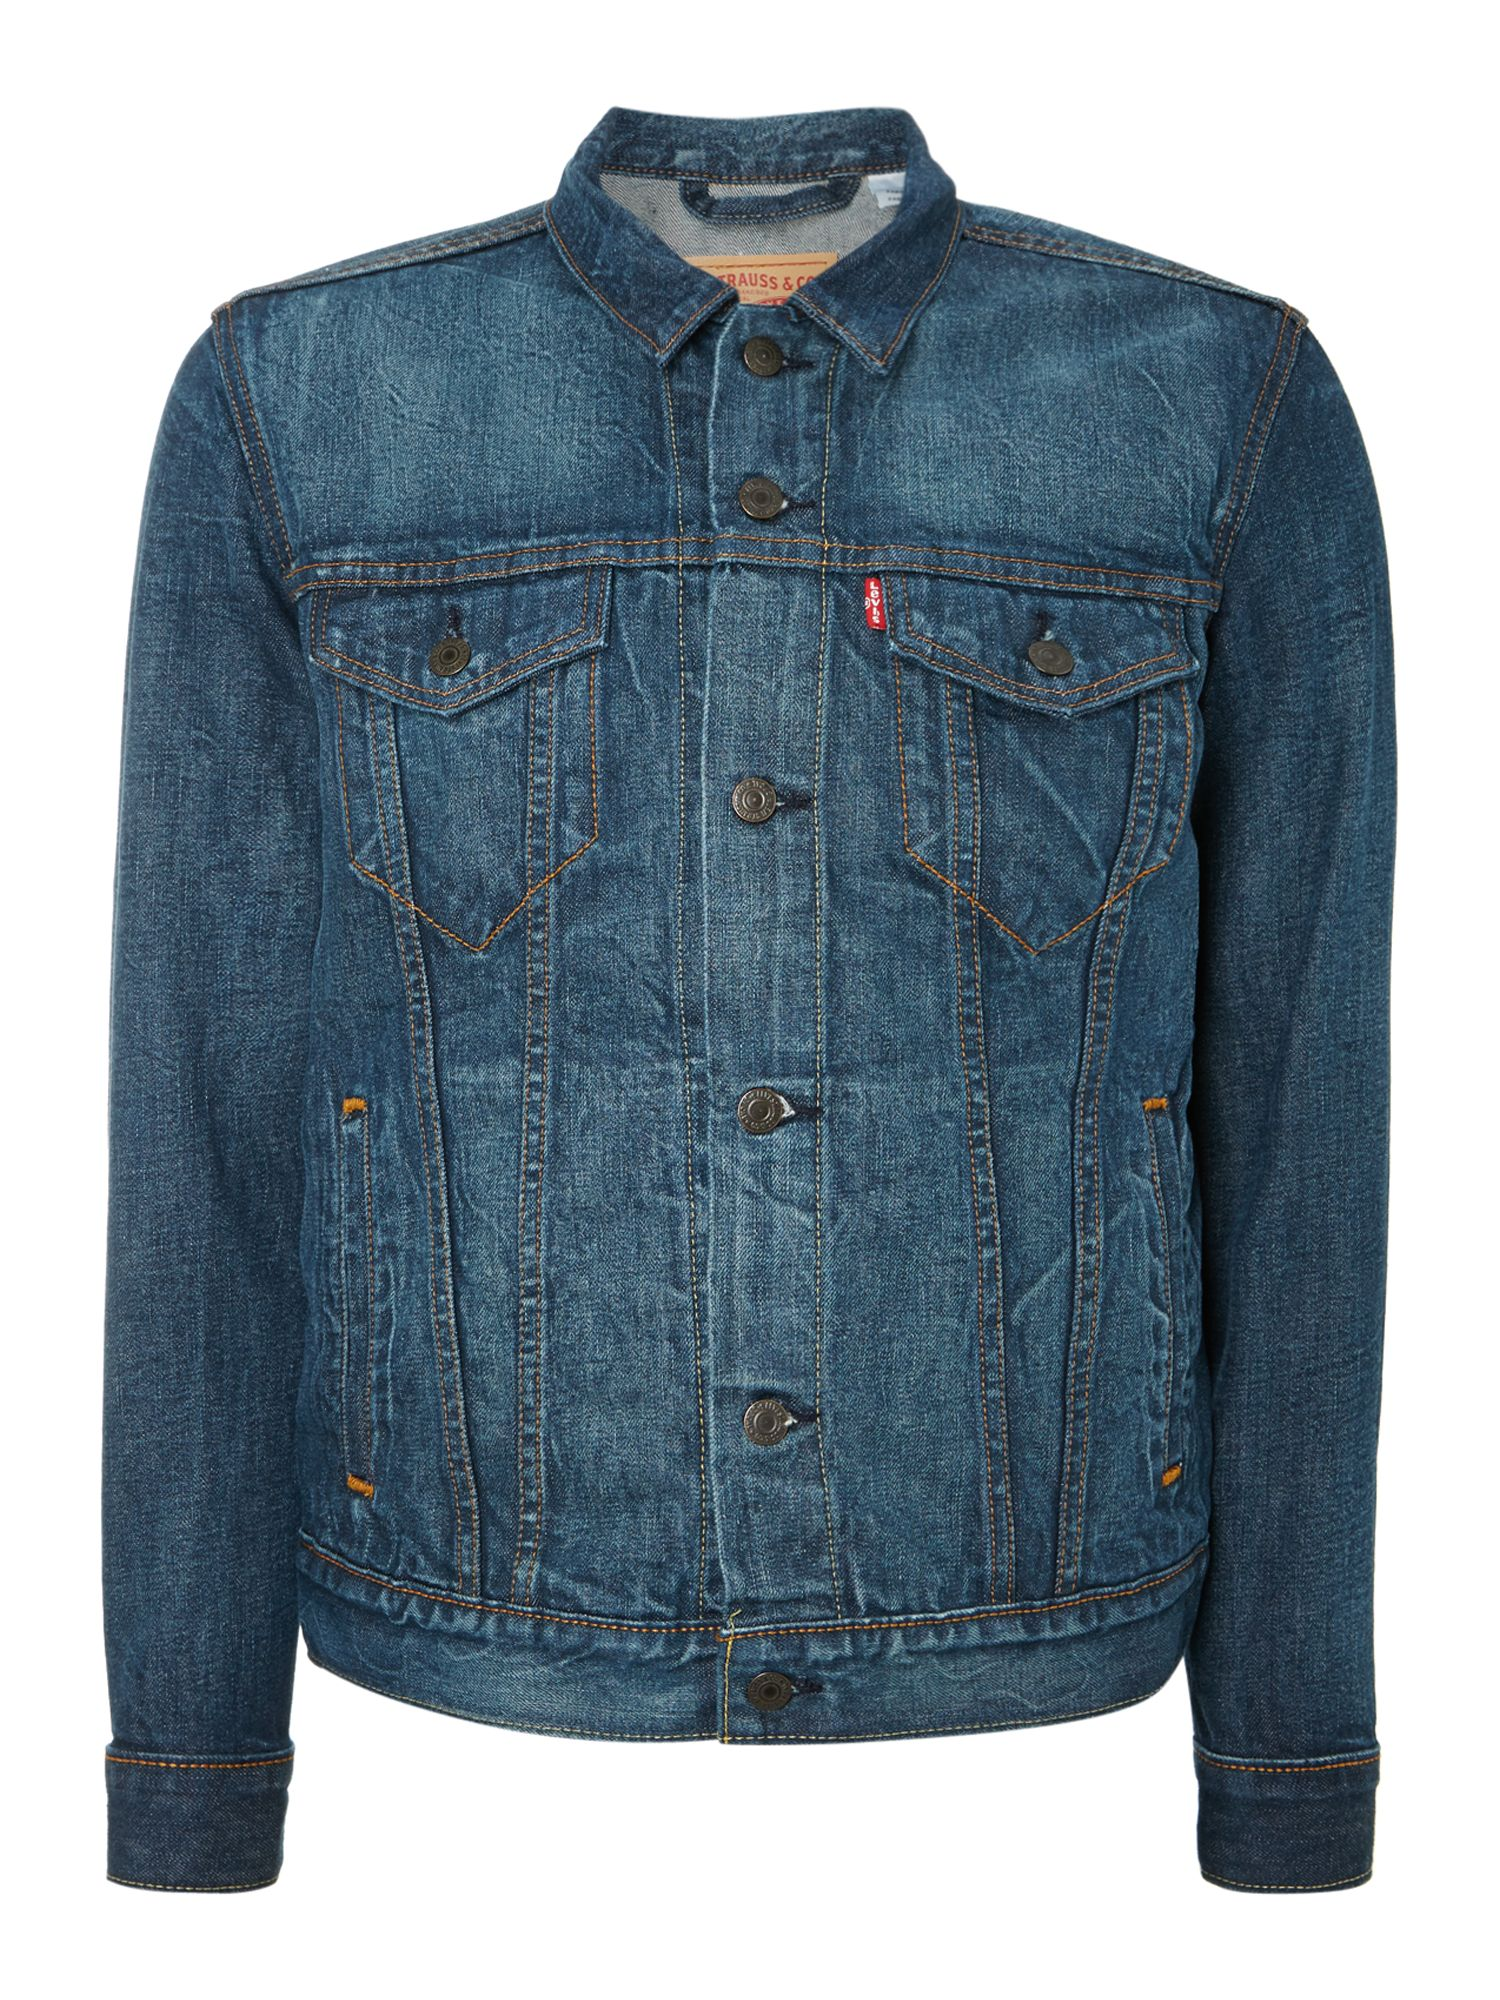 Light wash four pocket denim jacket